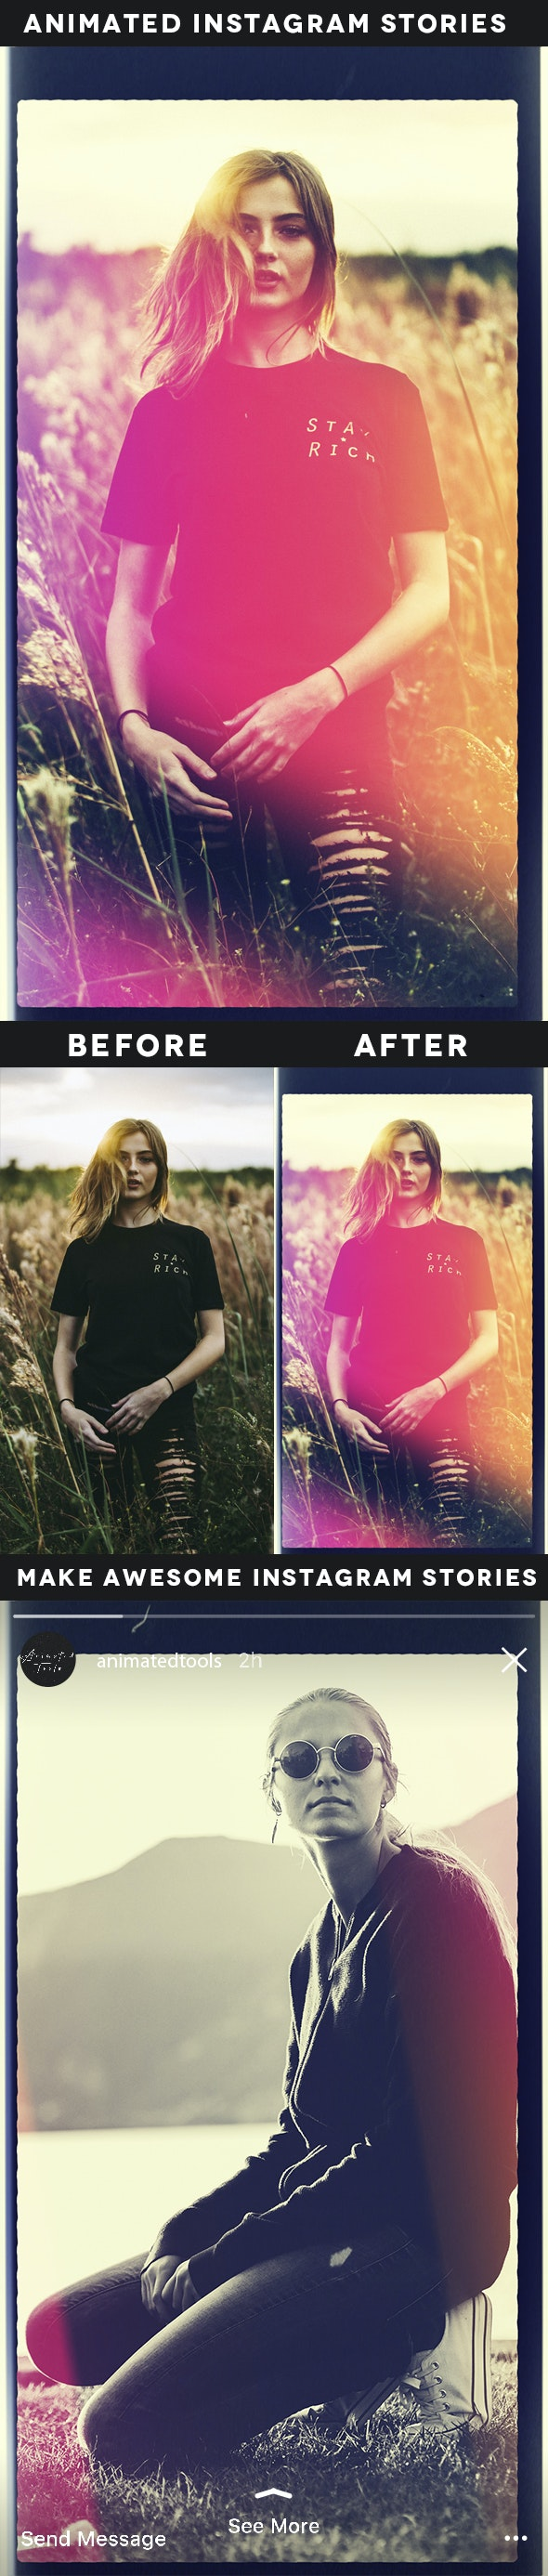 Animated Light Leaks Instagram Stories Action - Photo Effects Actions